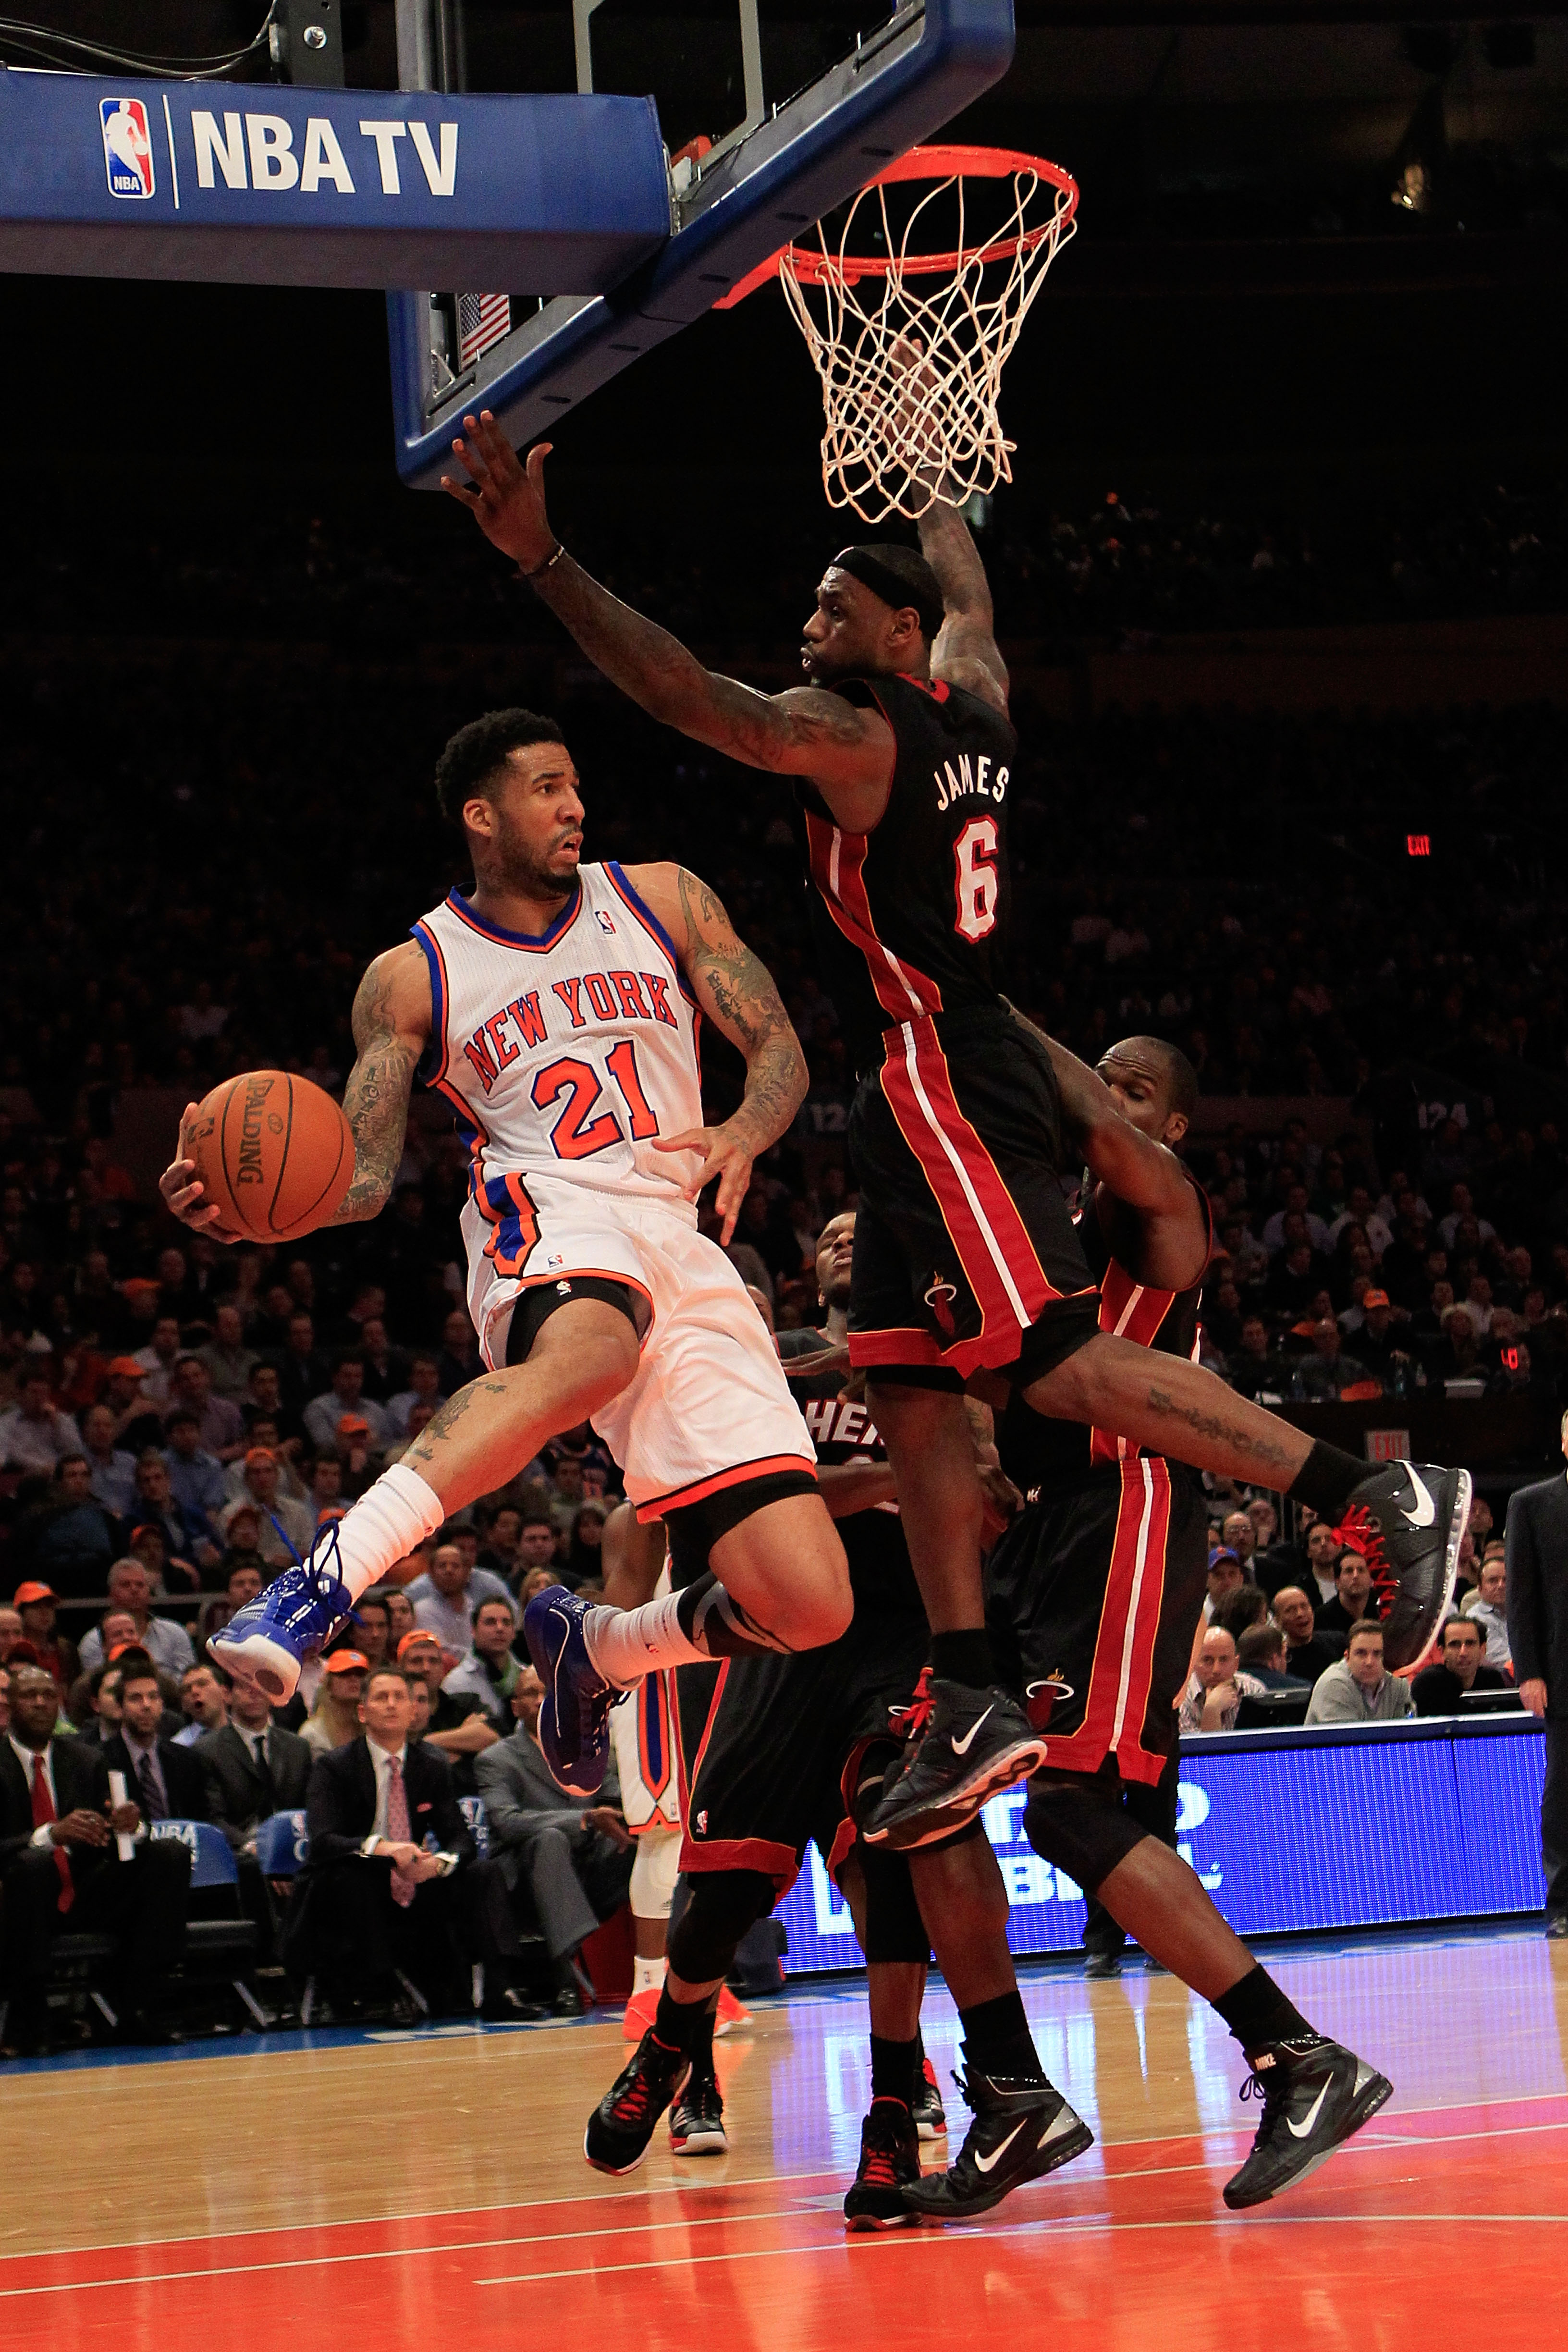 NEW YORK, NY - JANUARY 27: Wilson Chandler #21 of the New York Knicks passes around LeBron James #6 of the Miami Heat at Madison Square Garden on January 27, 2011 in New York City. NOTE TO USER: User expressly acknowledges and agrees that, by downloading